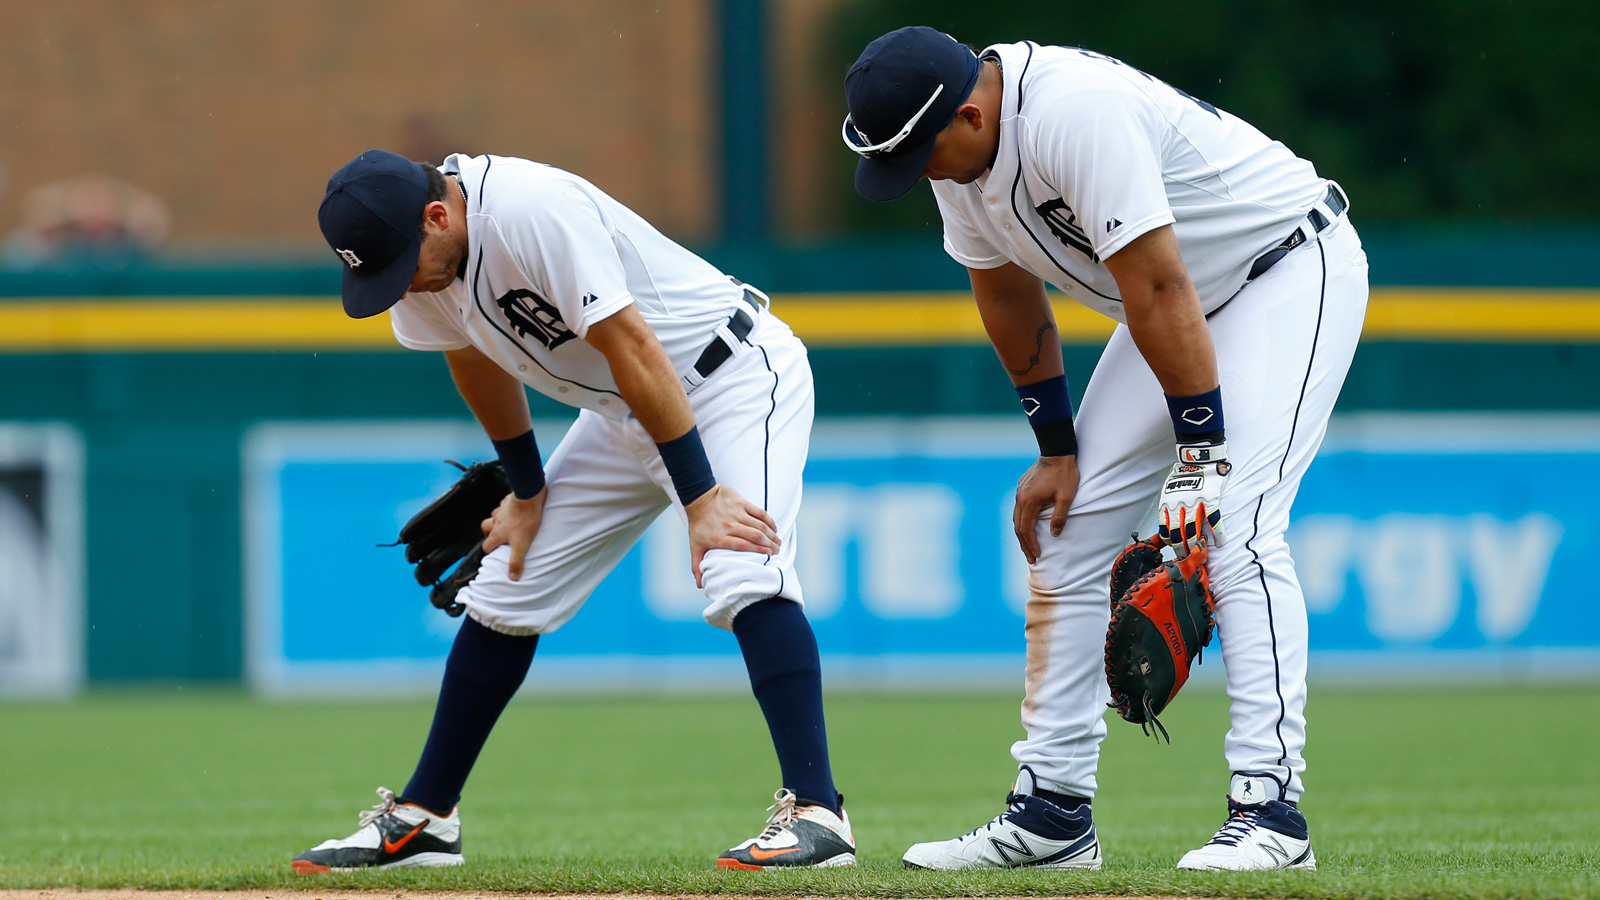 Tigers fall to reeling White Sox 8-7